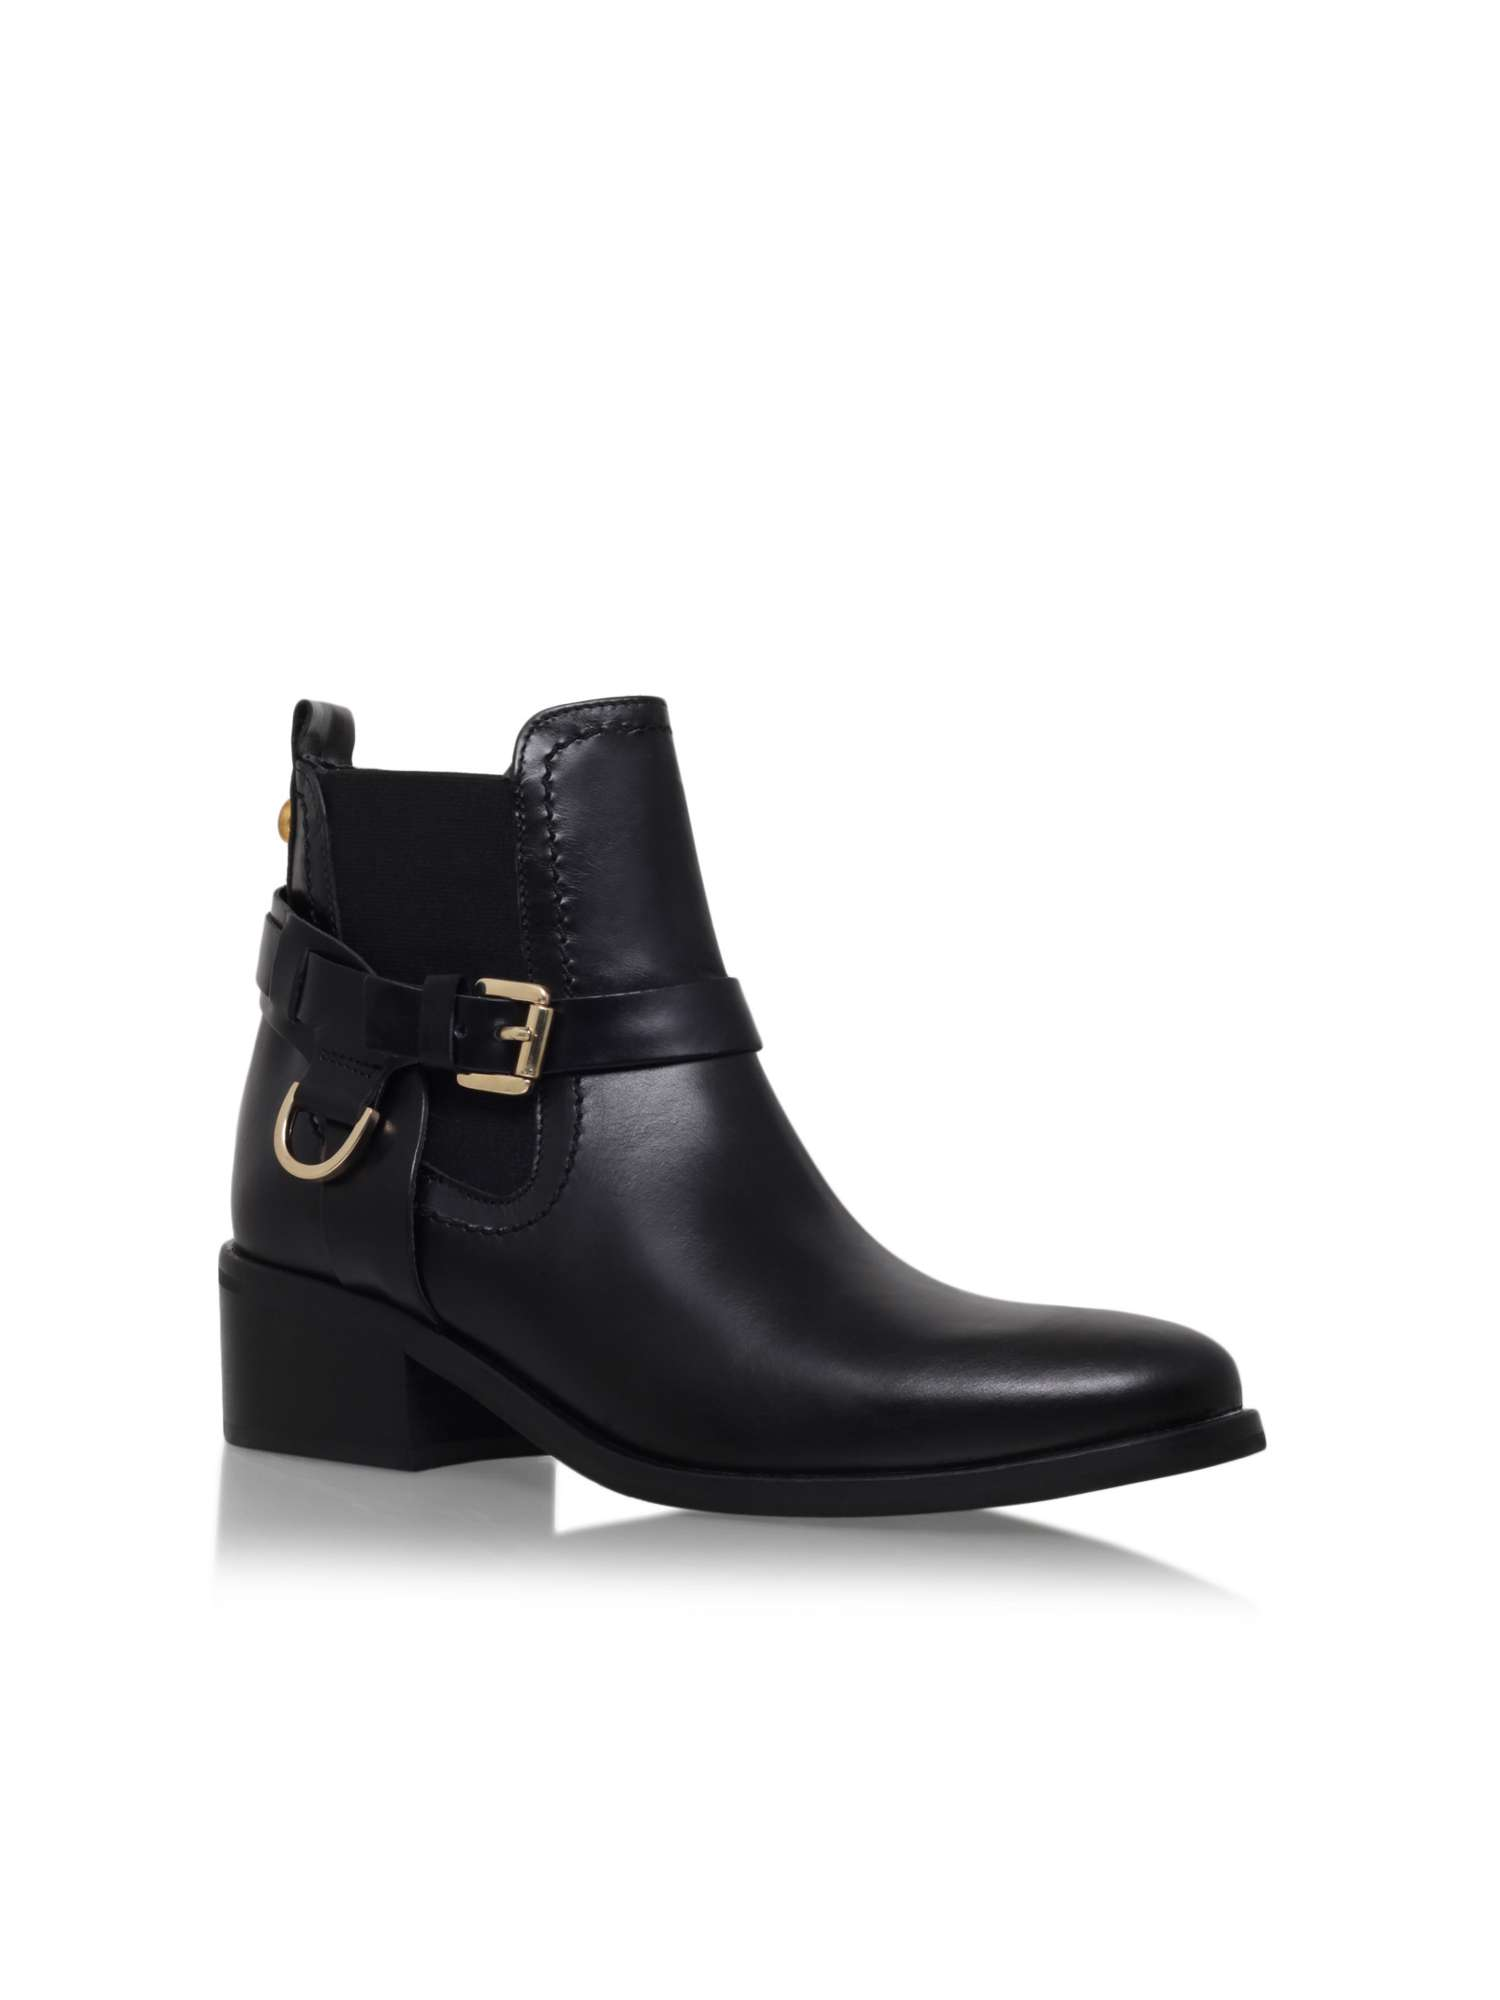 excellent sale online Casual Buckle and Slip-On Design Over The Knee Boots For Women - Black 38 sale order tKOm8g7DGL